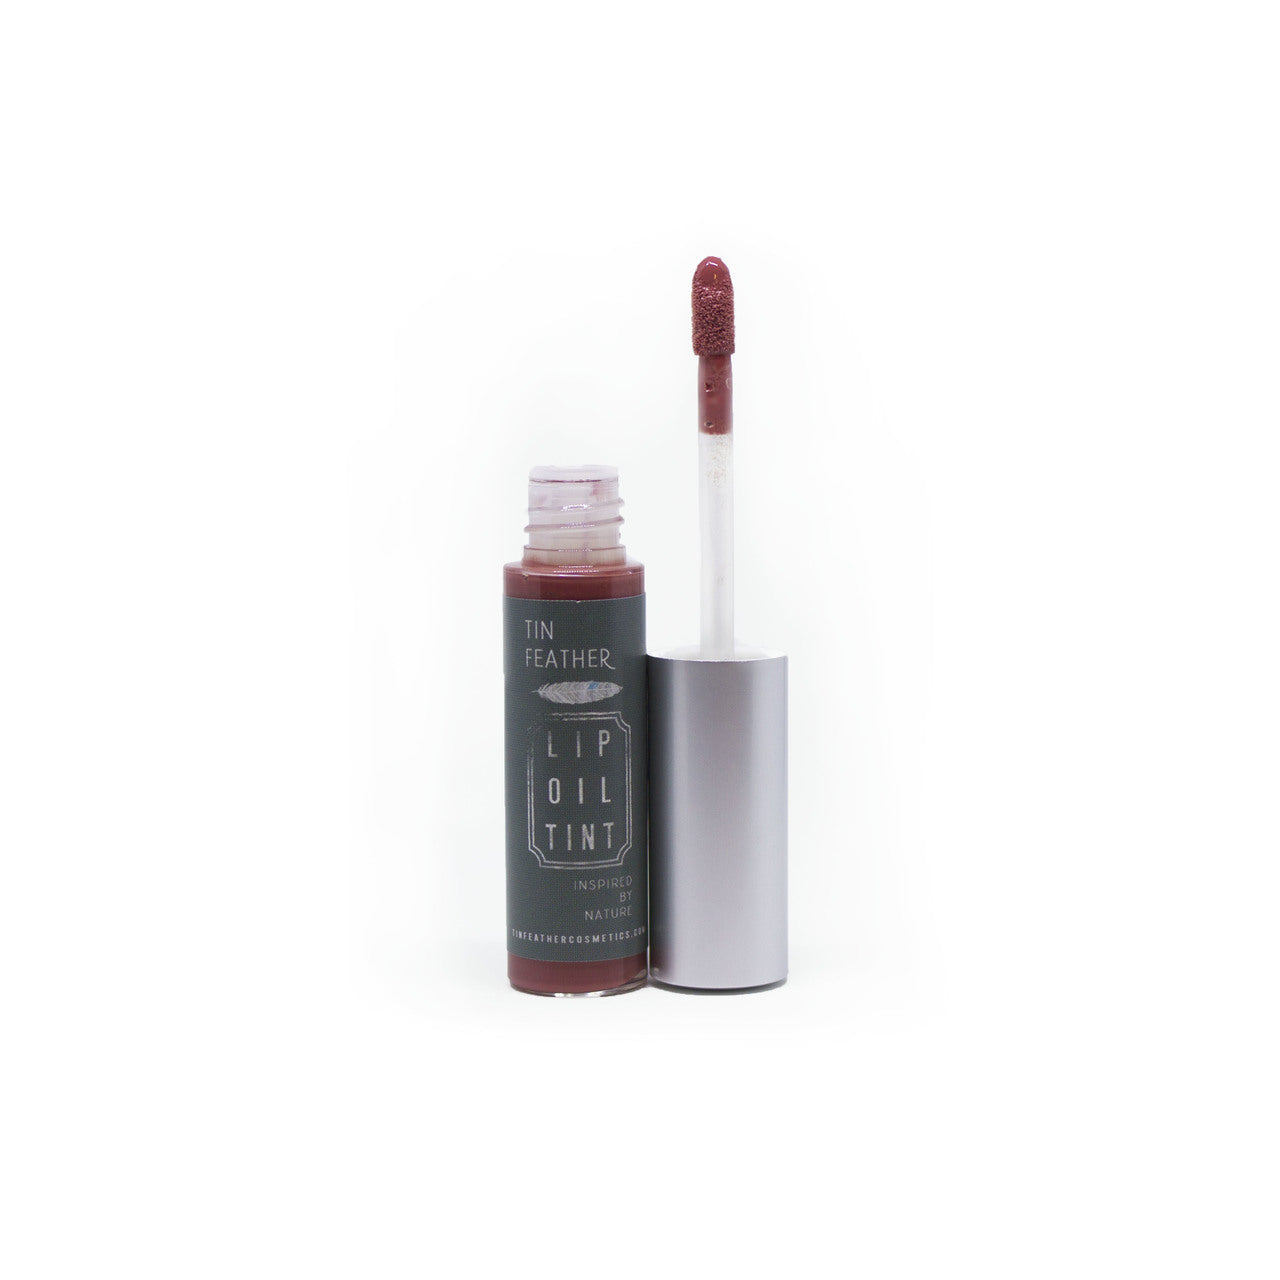 Tin Feather Lip Oil Tint Ritzy